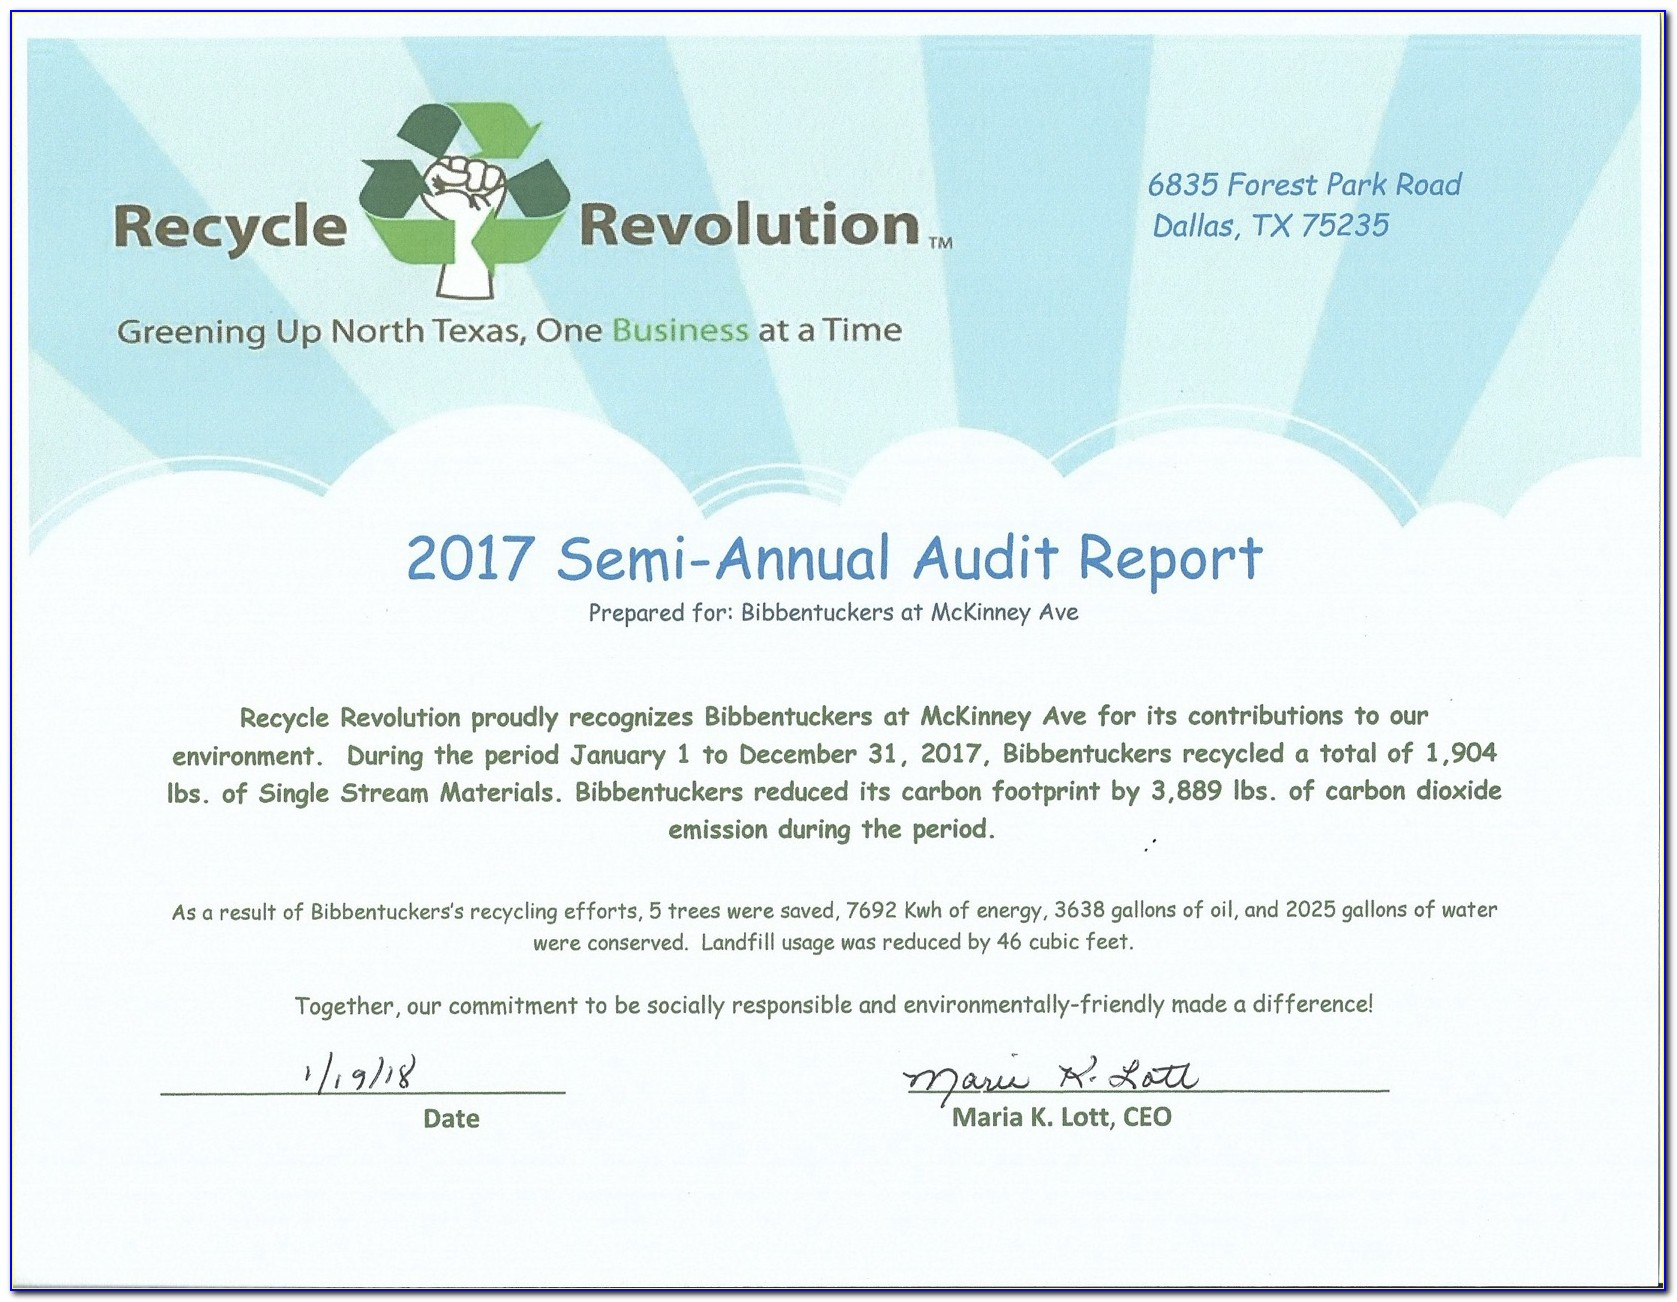 City Of Dallas Certificate Of Occupancy Report